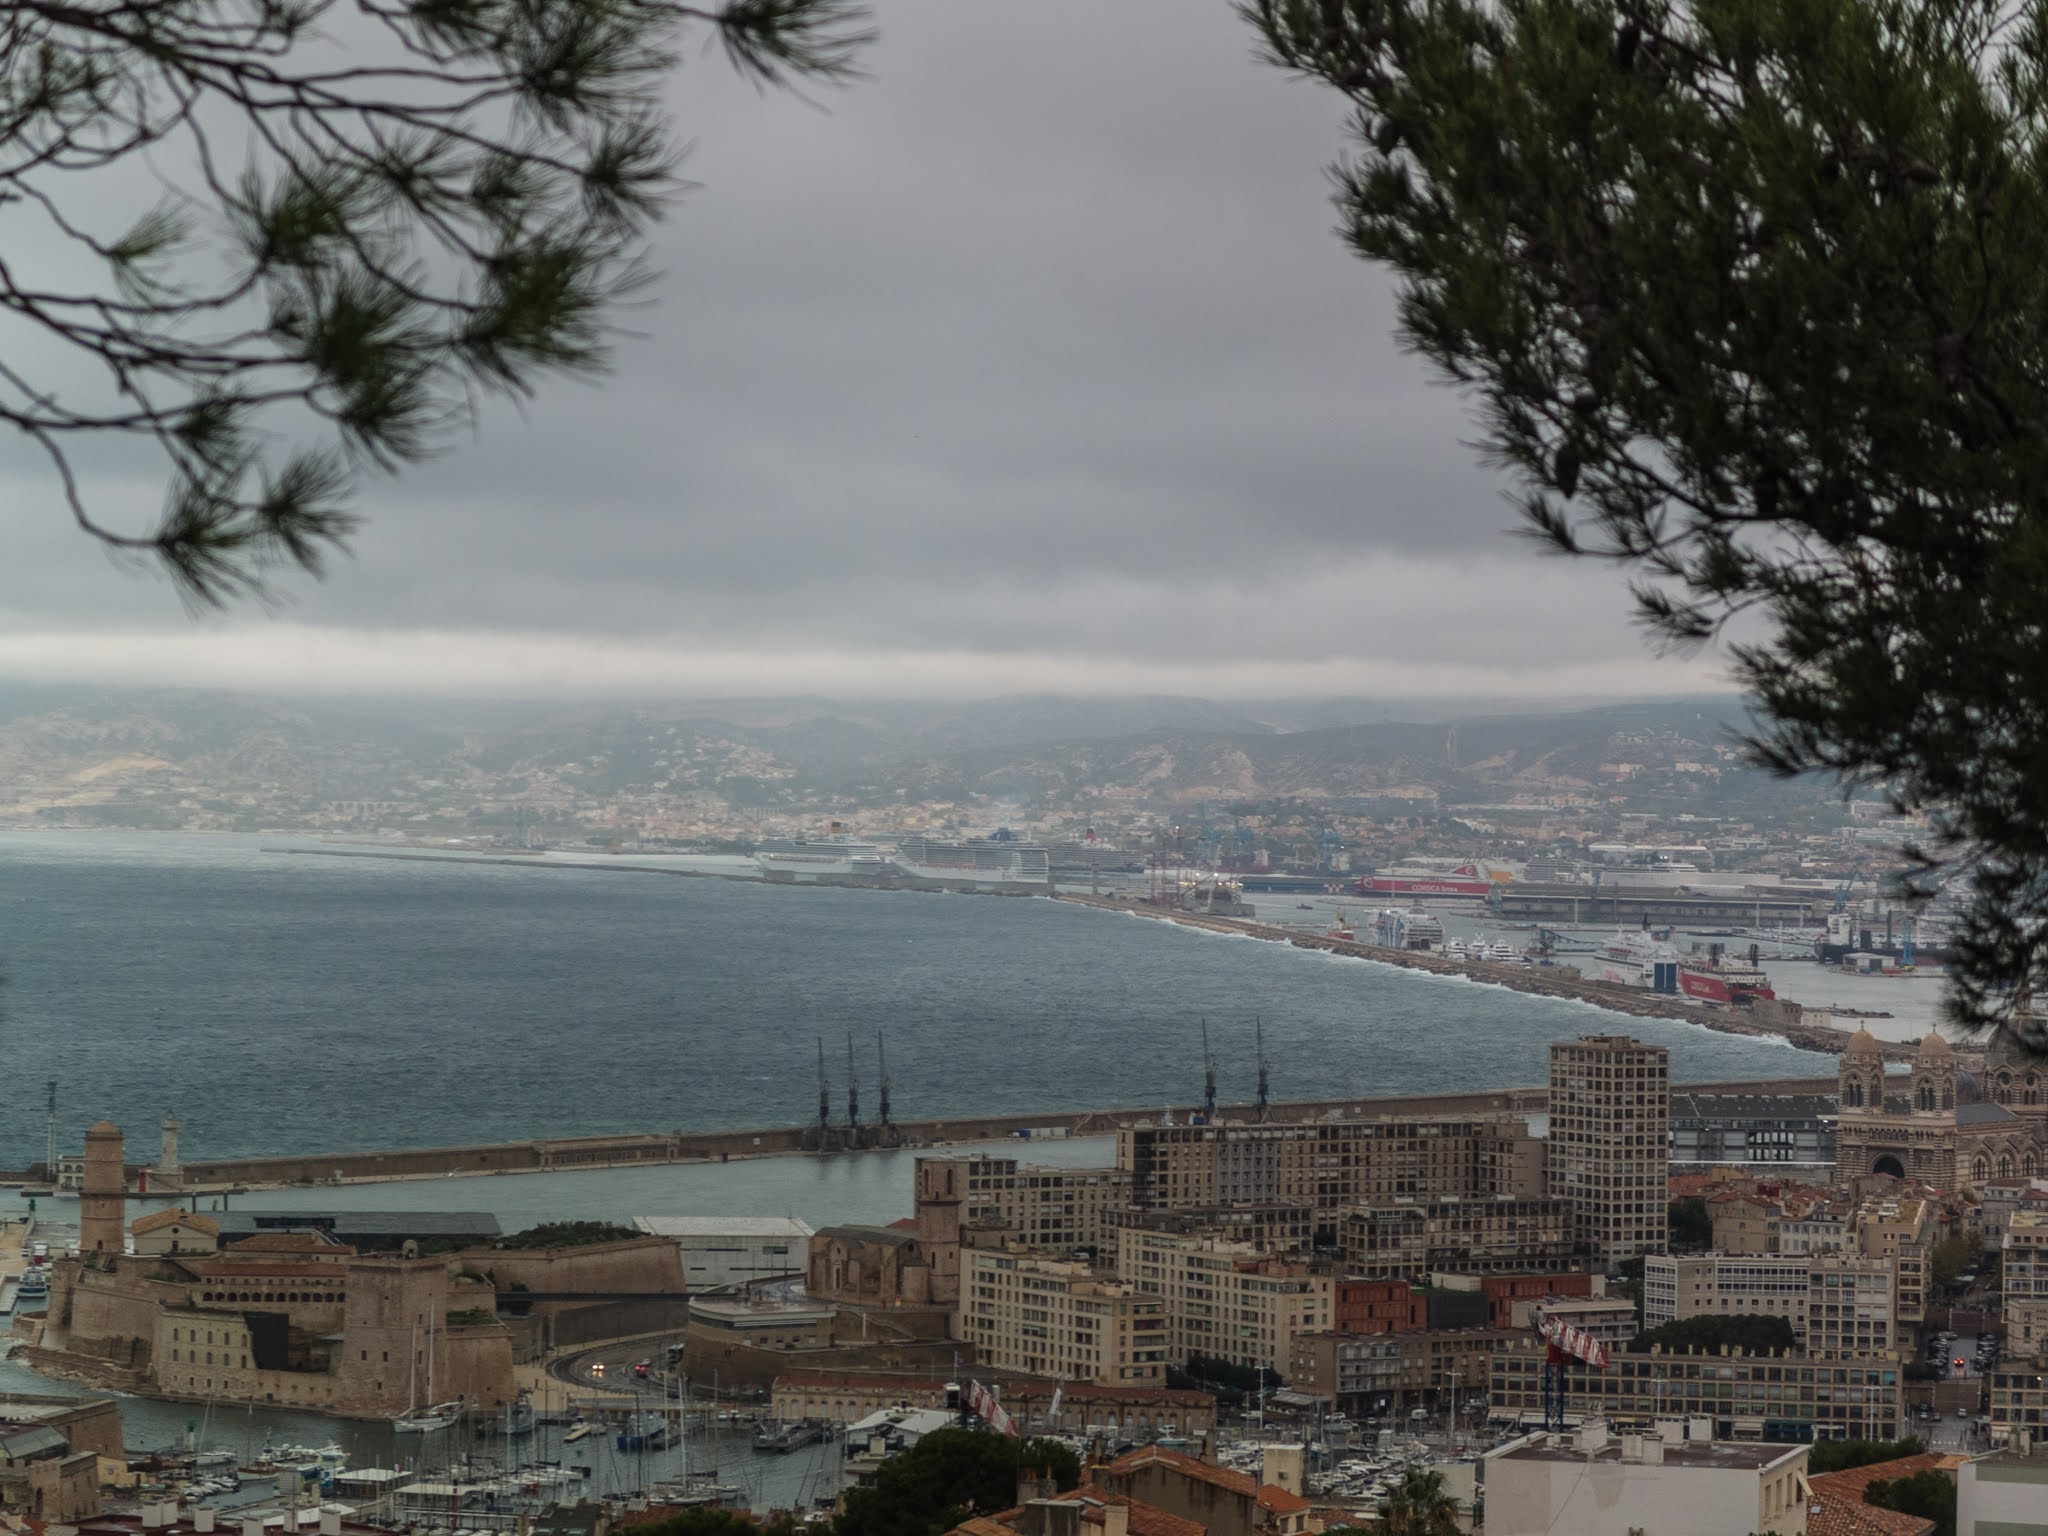 View of the port of Marseille under pine trees on La Garde Hill.